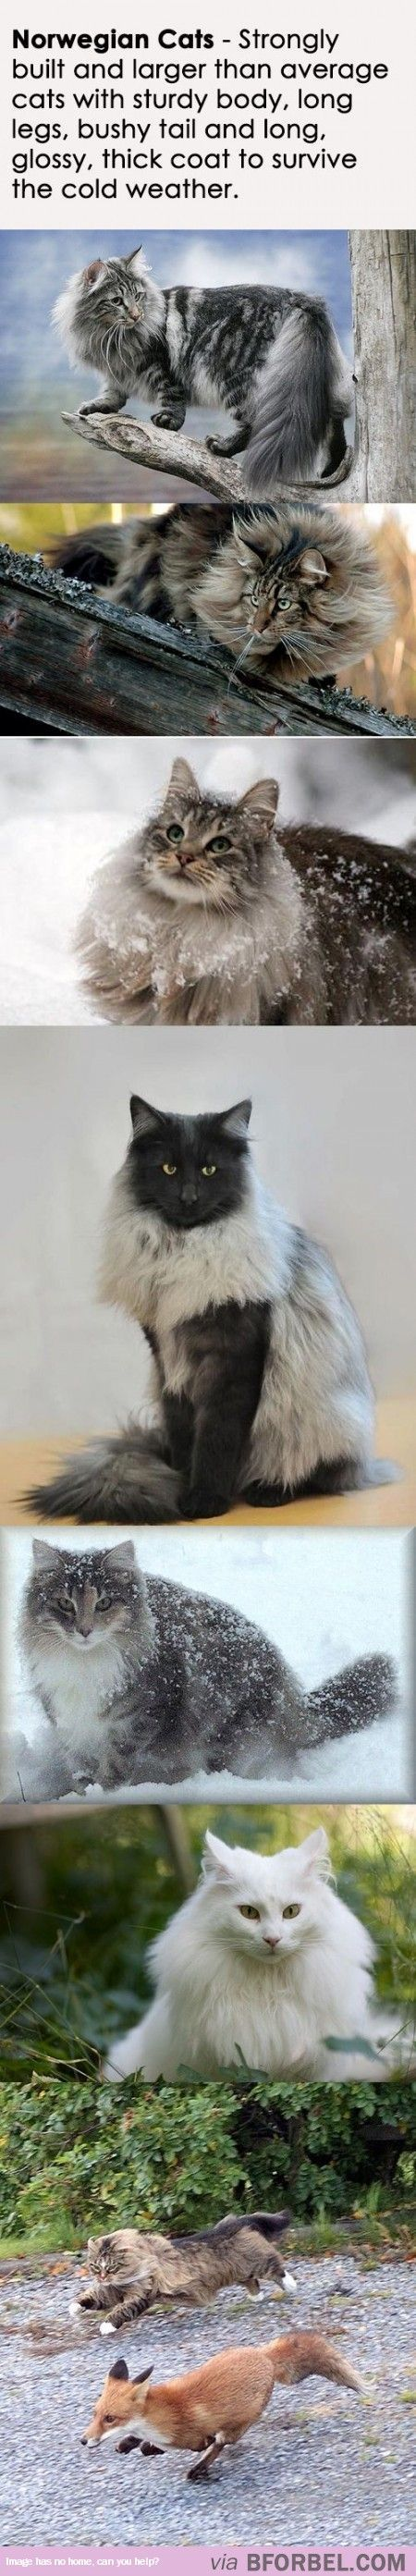 Fluffy cat breeds - My Norwegian Forest cat Boots is a twin to this beauteous vision of lovliness :) #fluffycatsbreeds